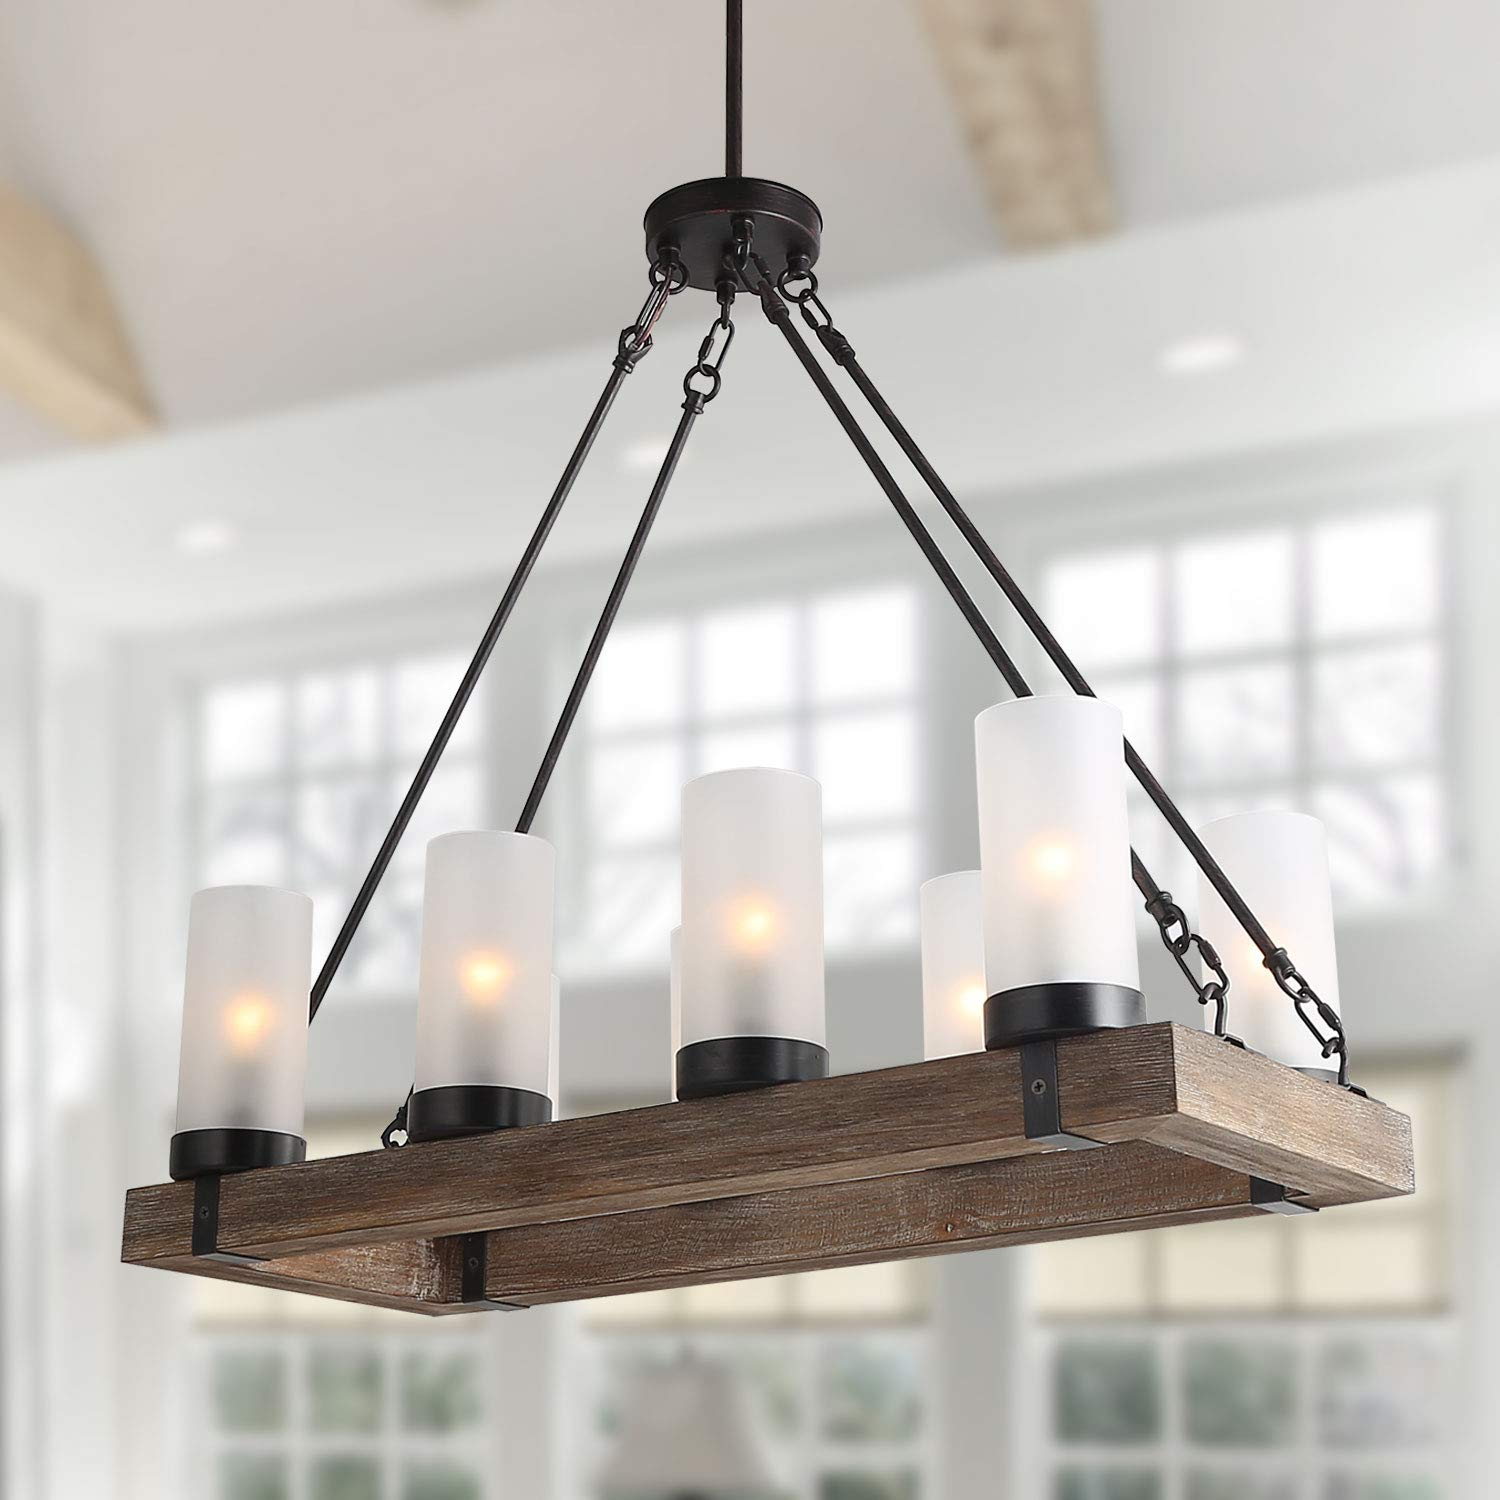 Lnc kitchen lighting fixtures rectangular wood rustic farmhouse chandelier for dining rooms hanging ceiling lamp a02988 amazon com